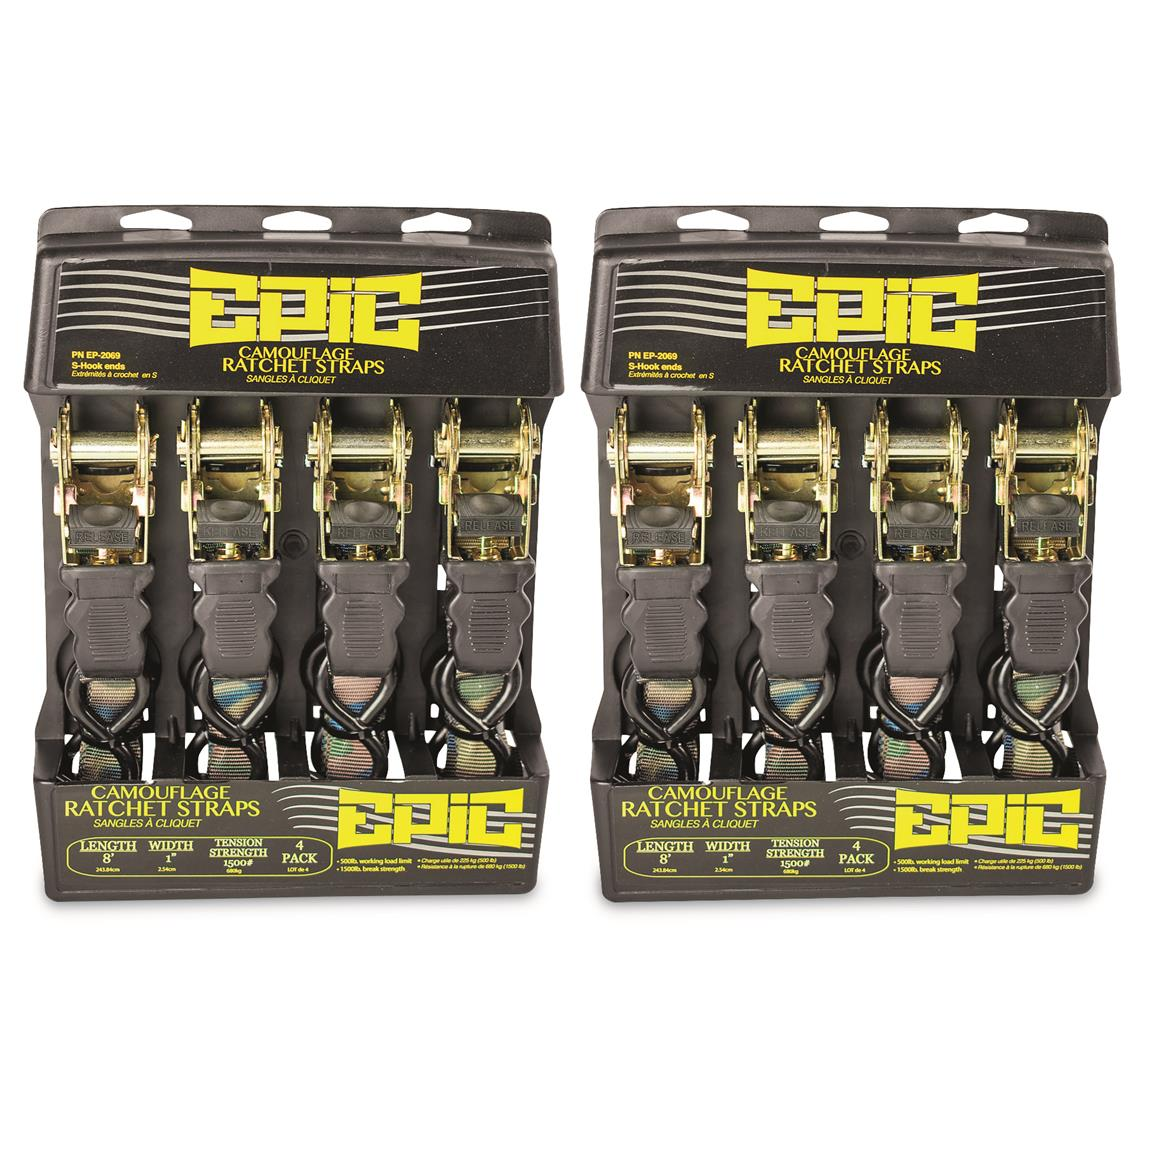 Epic Camo Ratchet Straps, 8-Pk.